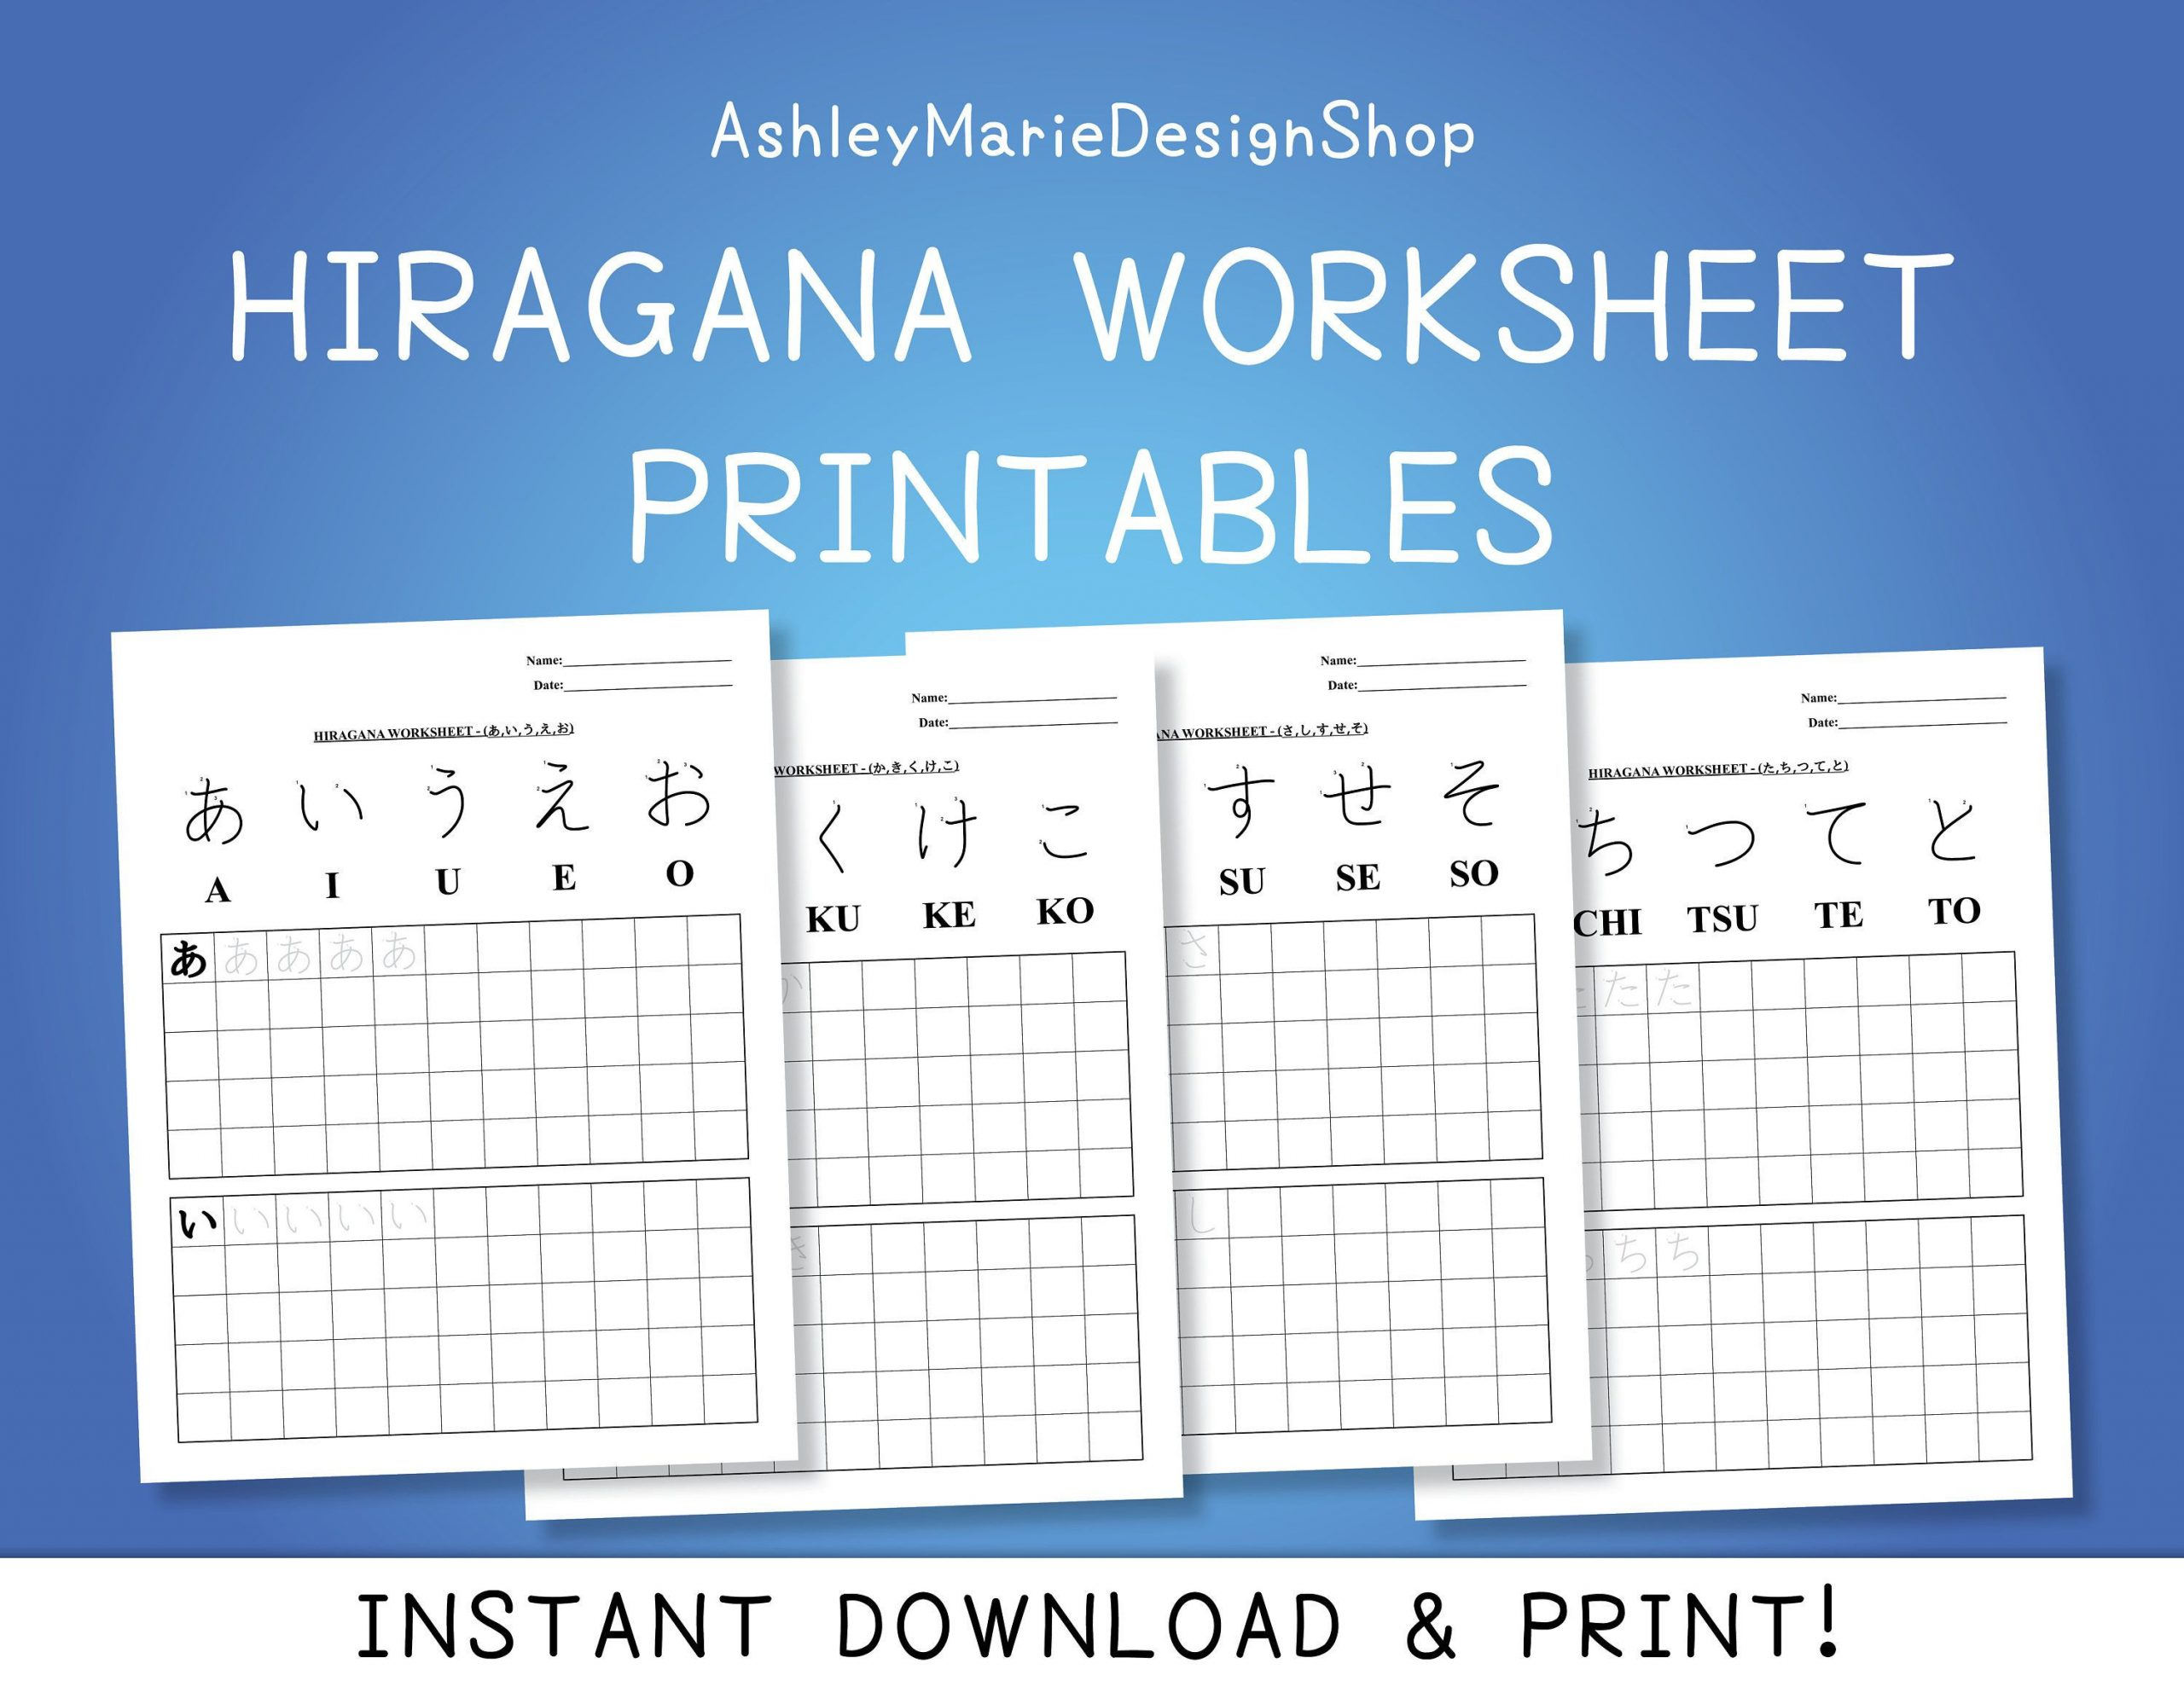 Printable Hiragana Worksheets Japanese Hiragana Worksheet Printables Instant Download